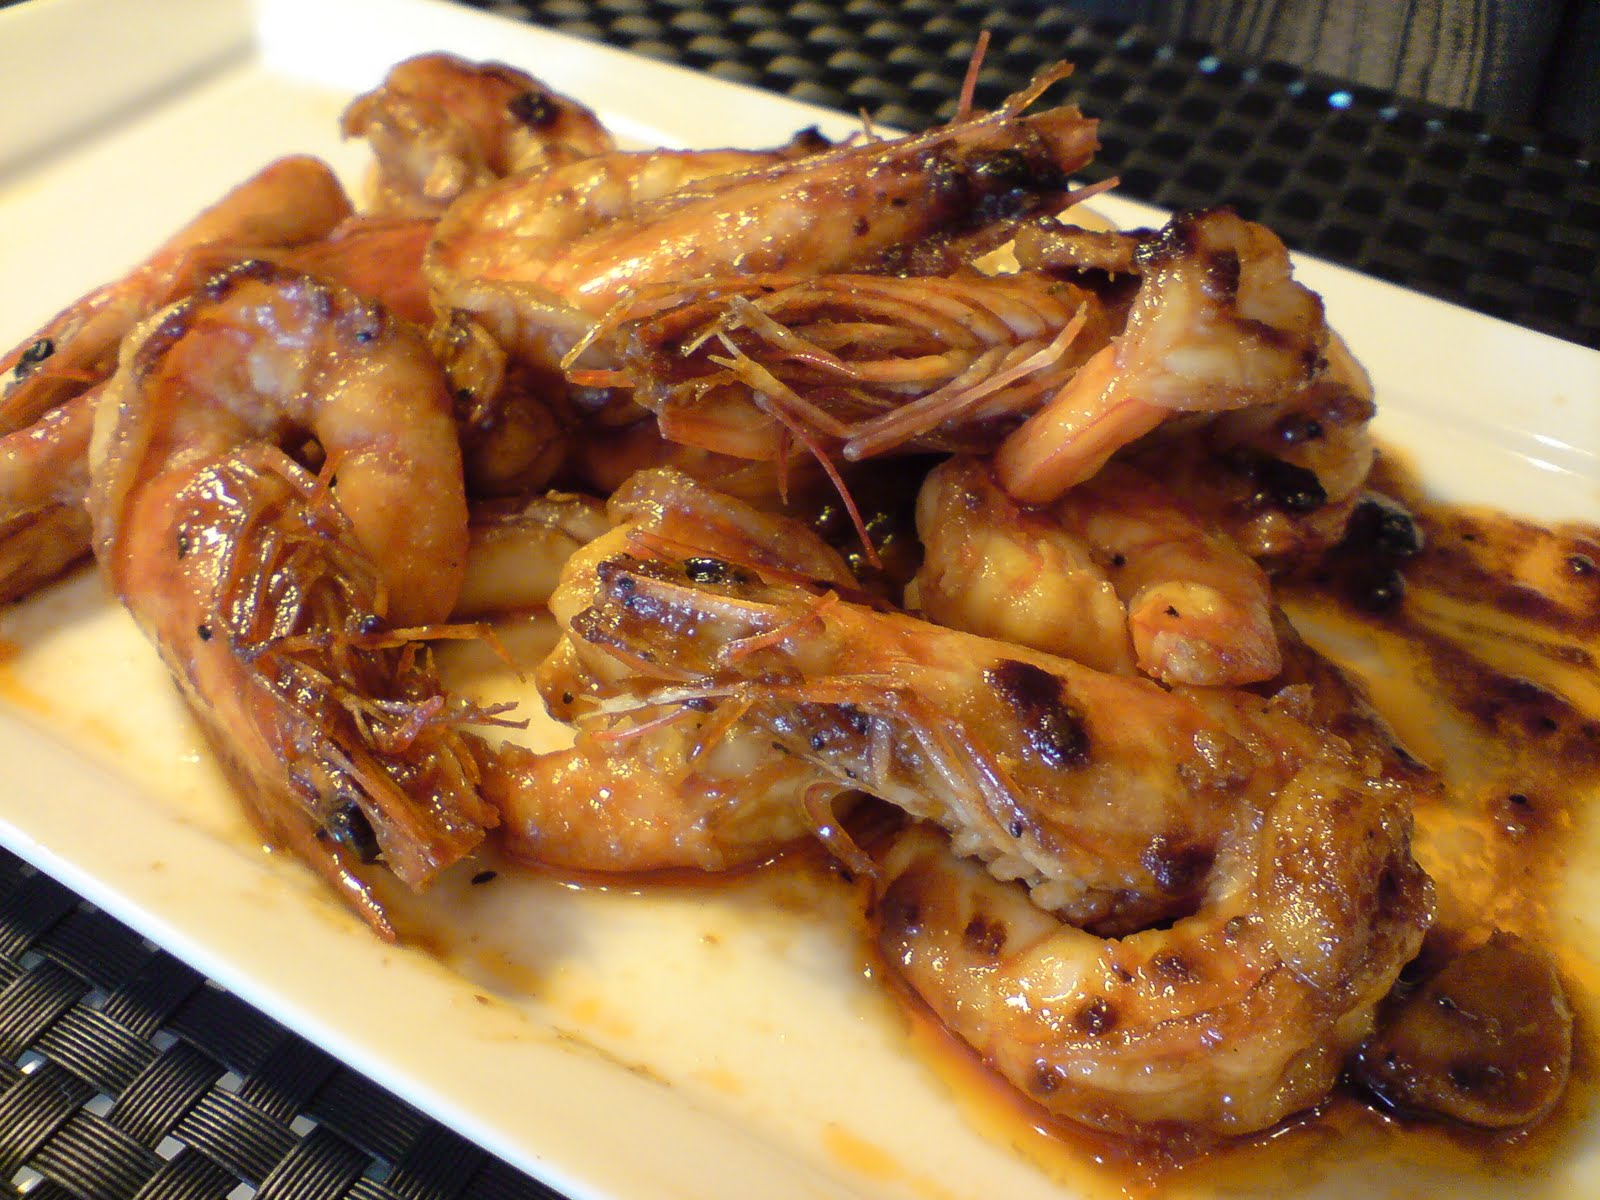 Stir-fry Prawns with Oyster Sauce and Black Pepper